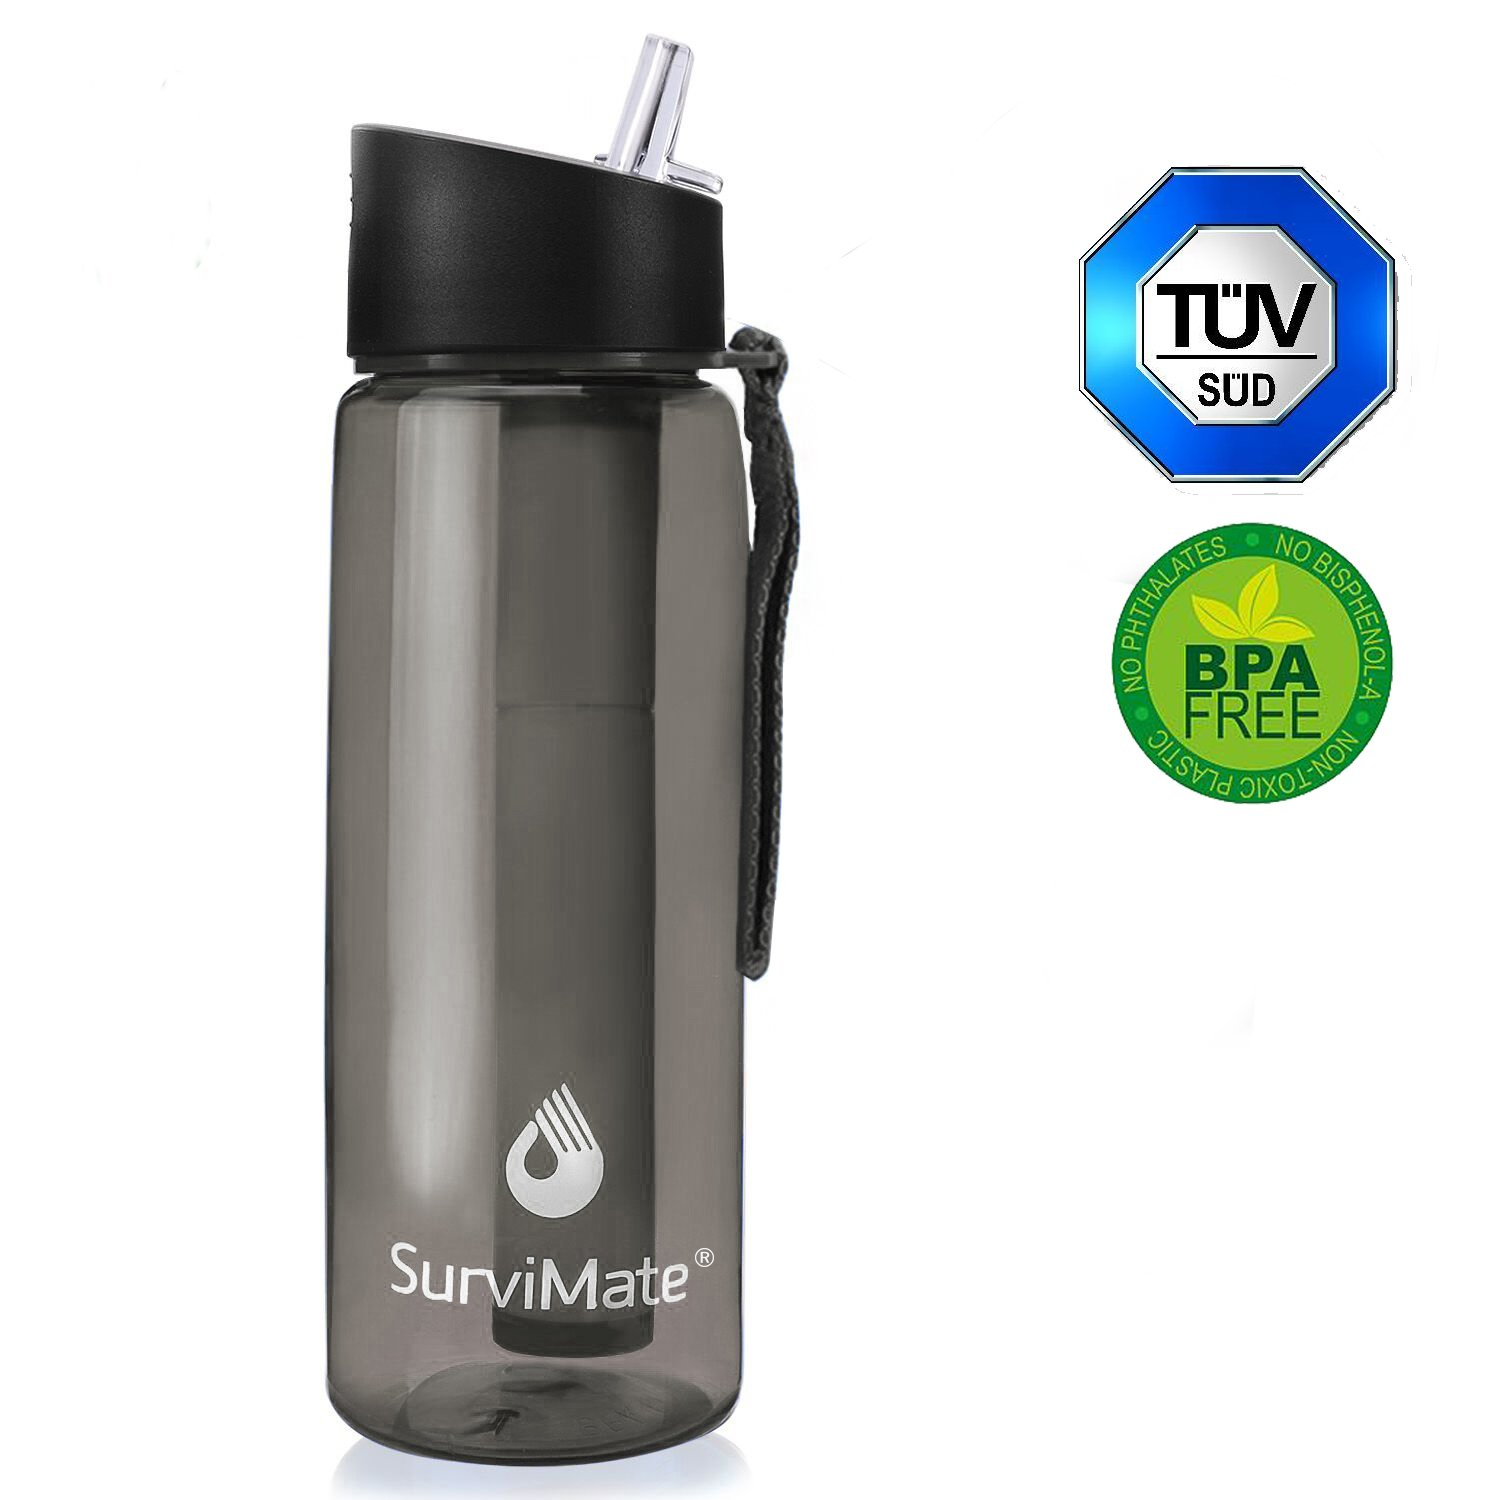 SurviMate Filtered Water Bottle BPA Free with 4-Stage Intergrated Filter Straw for Camping, Hiking, Backpacking and Travel by SurviMate (Image #1)